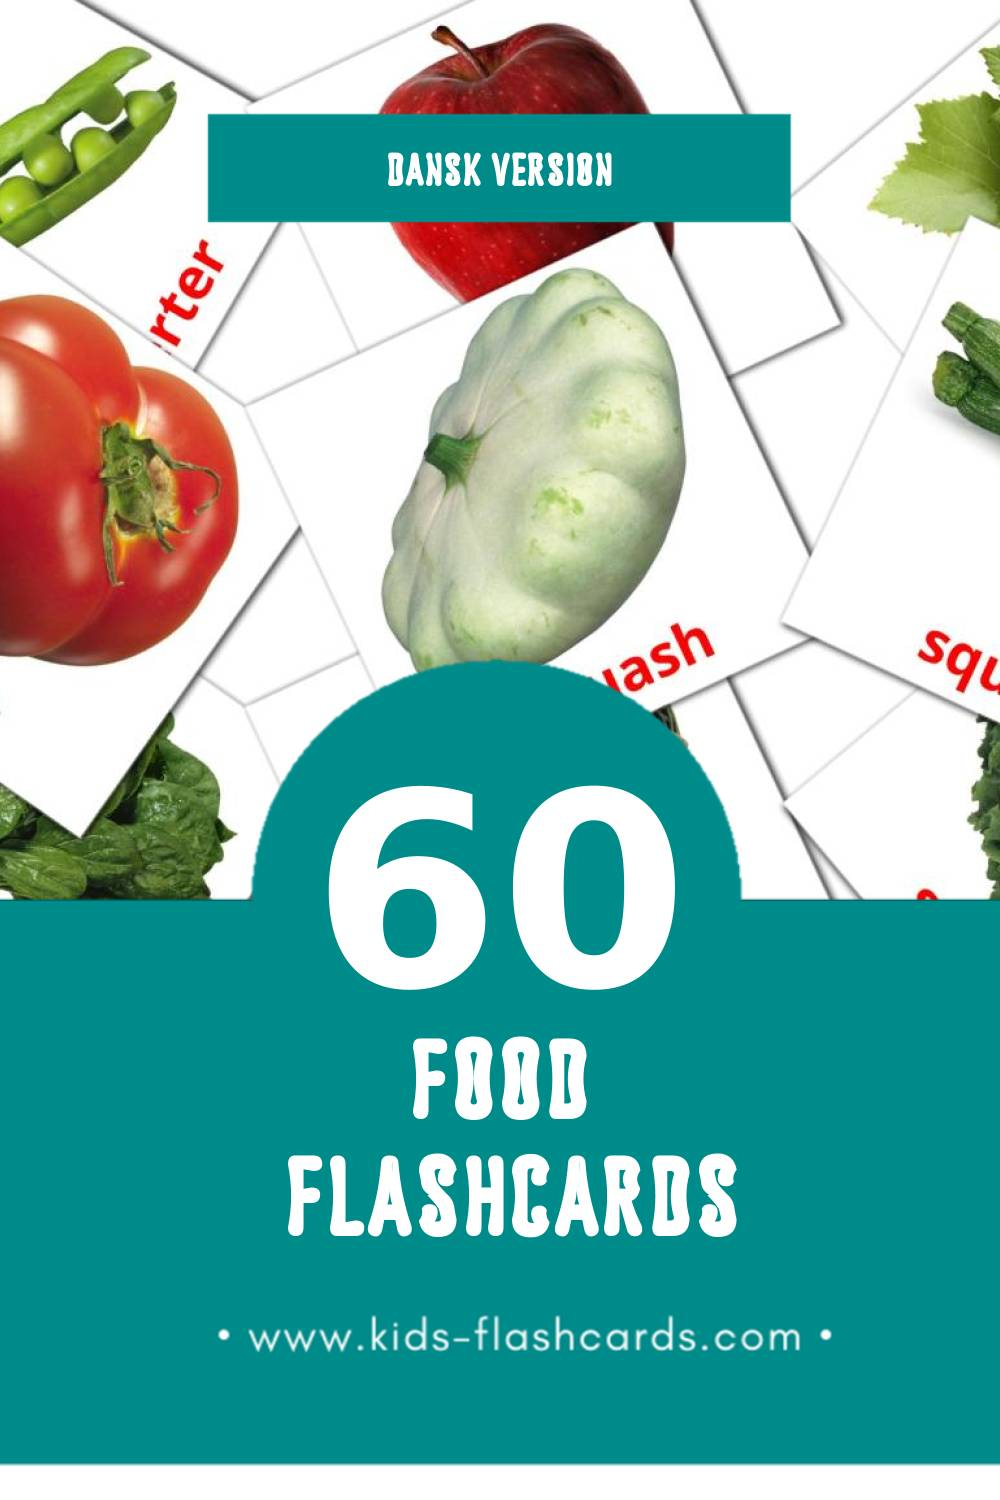 Visual Mad Flashcards for Toddlers (60 cards in Dansk)